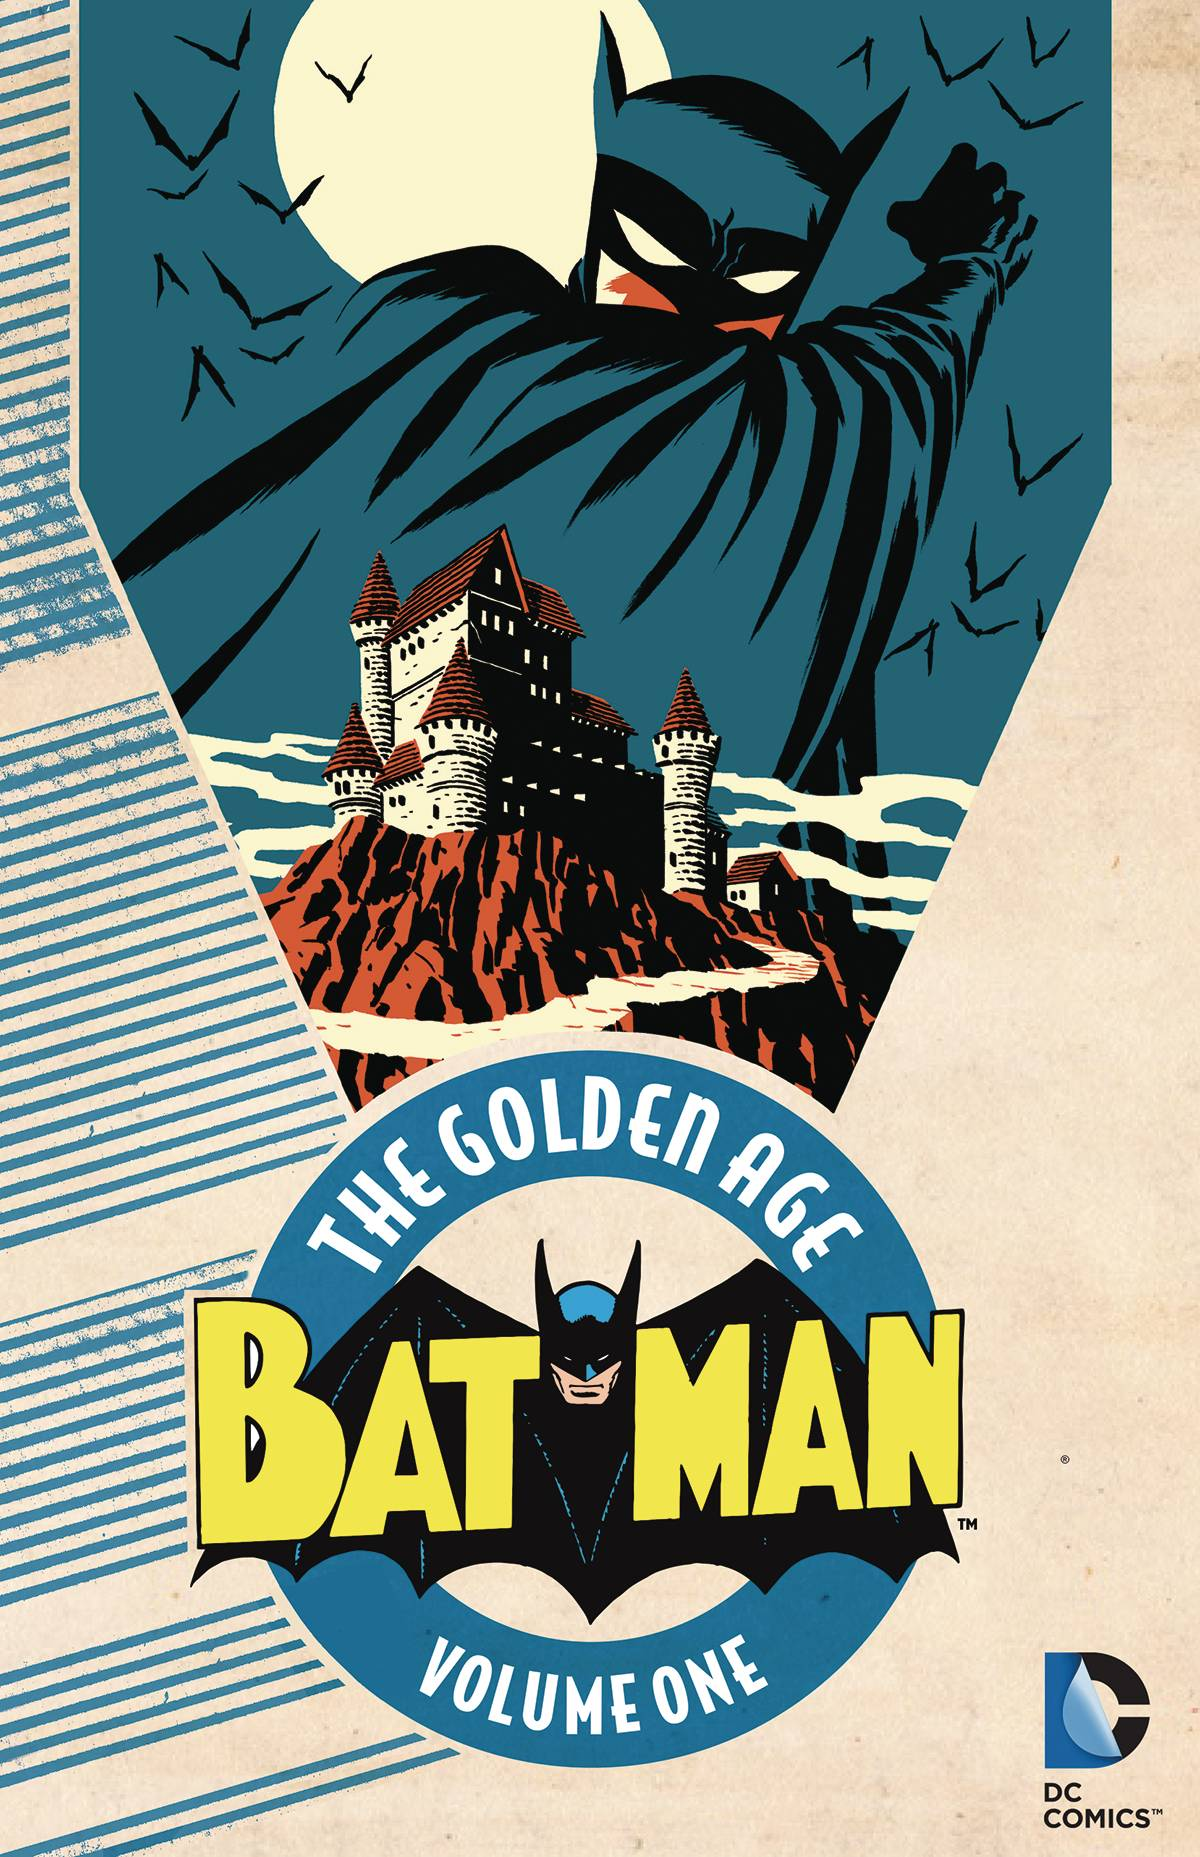 Batman the Golden Age TP Vol. 1